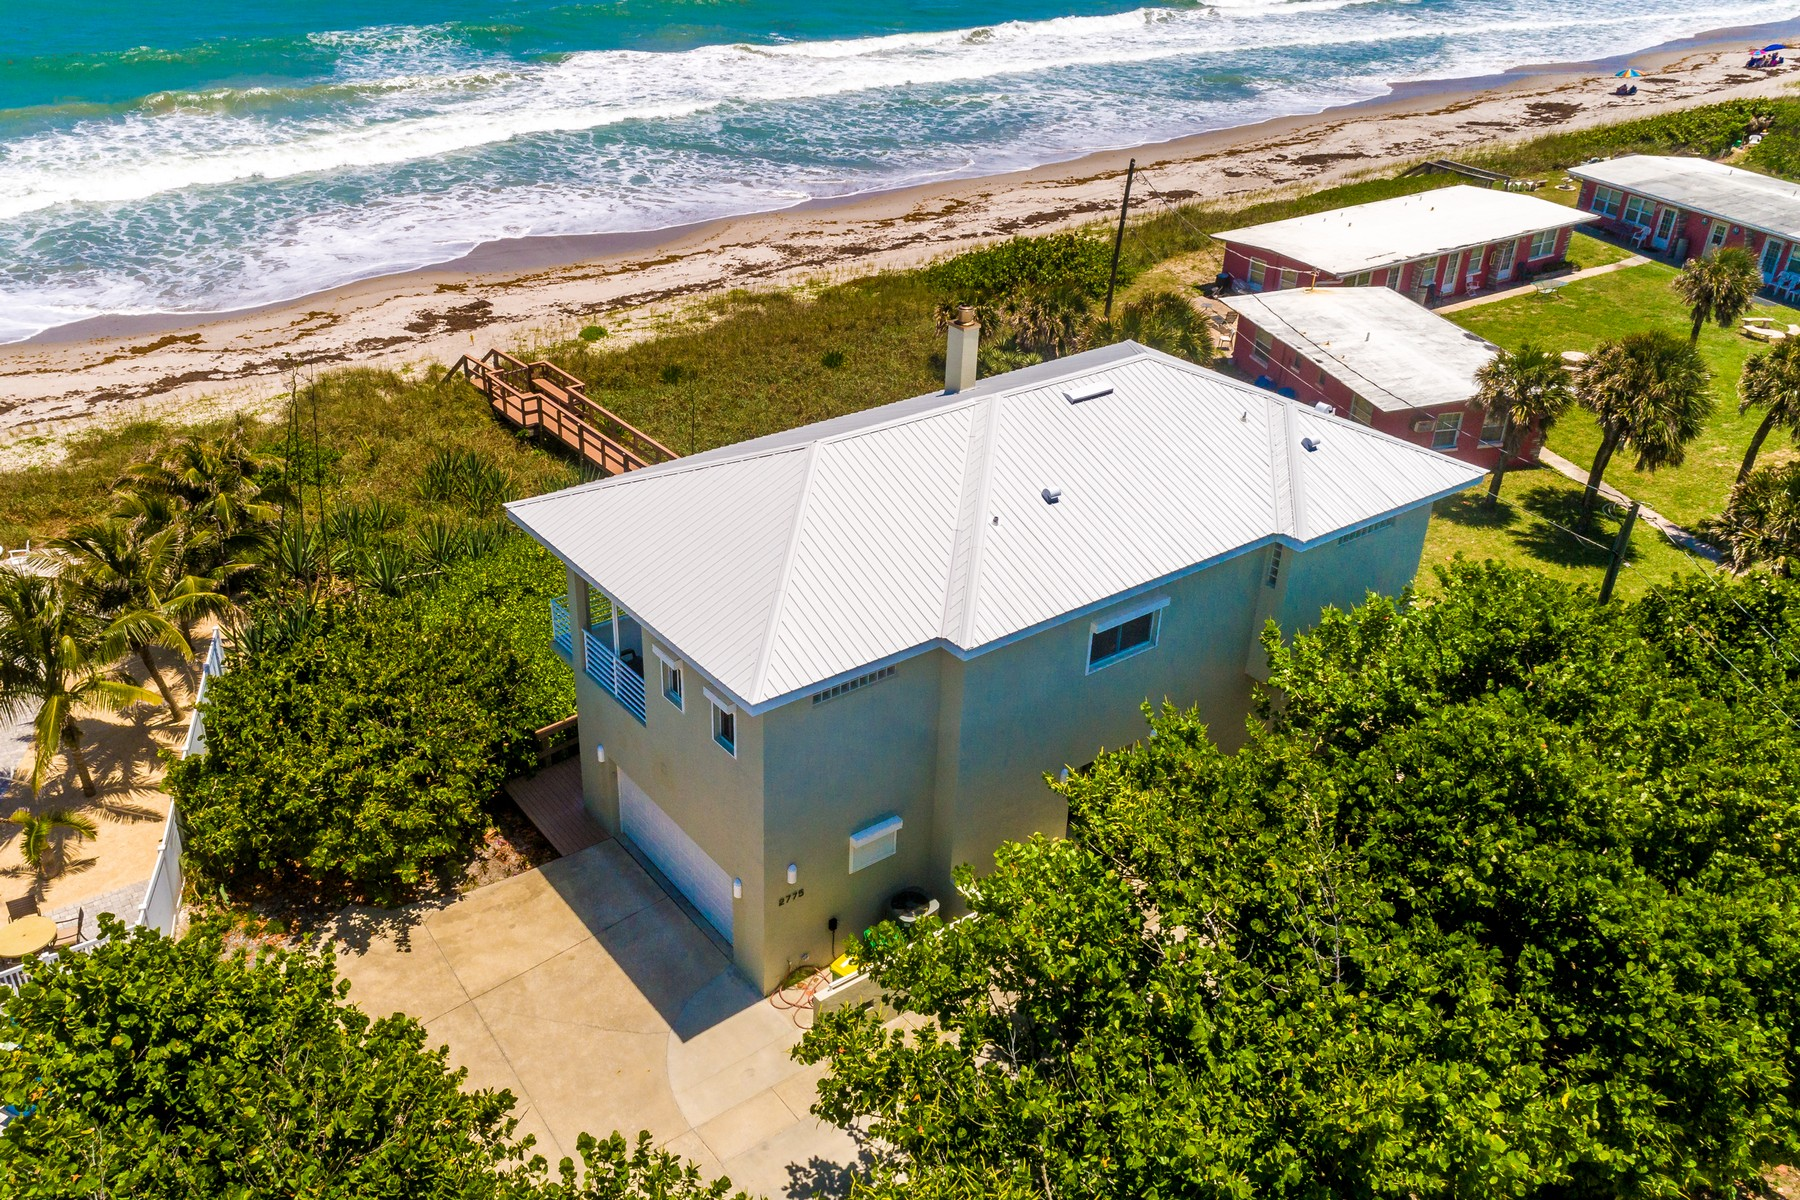 single family homes 为 销售 在 Modern Oceanfront Beauty 2775 S Highway A1A 墨尔本海滩, 佛罗里达州 32951 美国